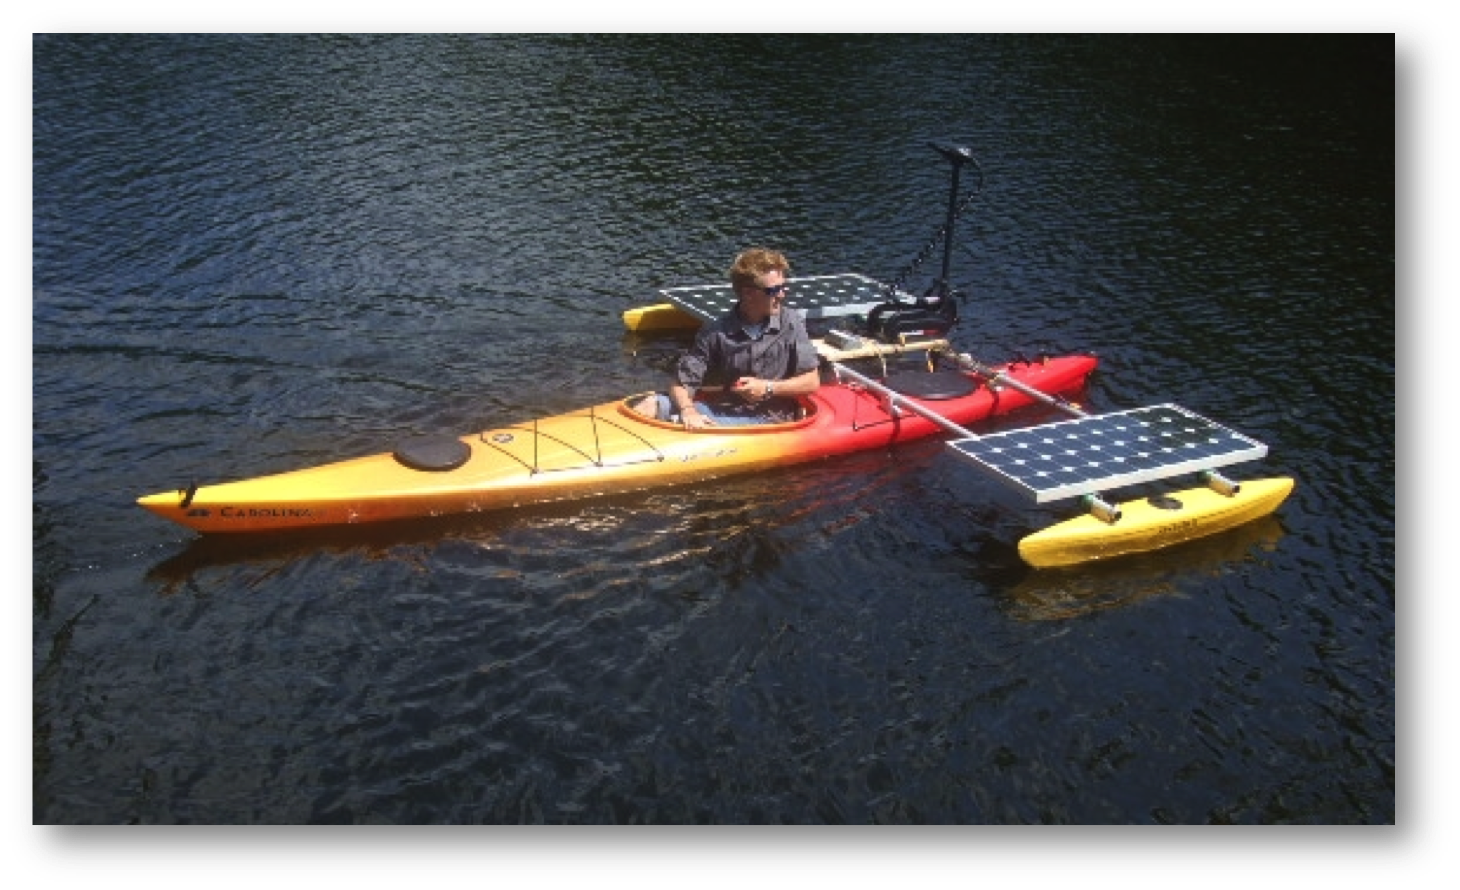 One of my students, Carson Byers, takes the solar kayak out for a test ...